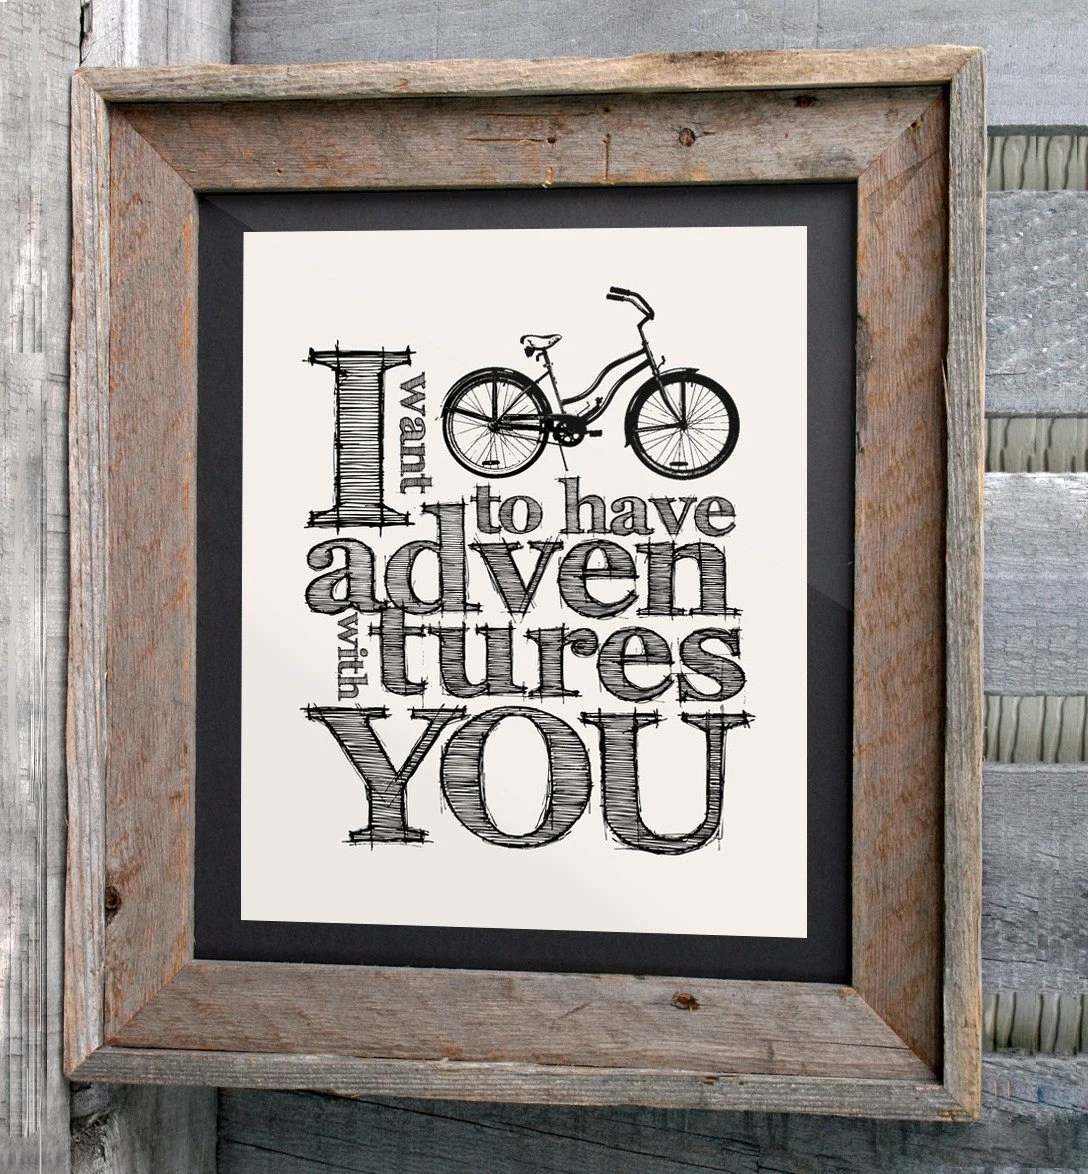 """Bicycle Art Poster - 16x20"""" - """"I want to have adventures with you"""" - Typographic Print"""